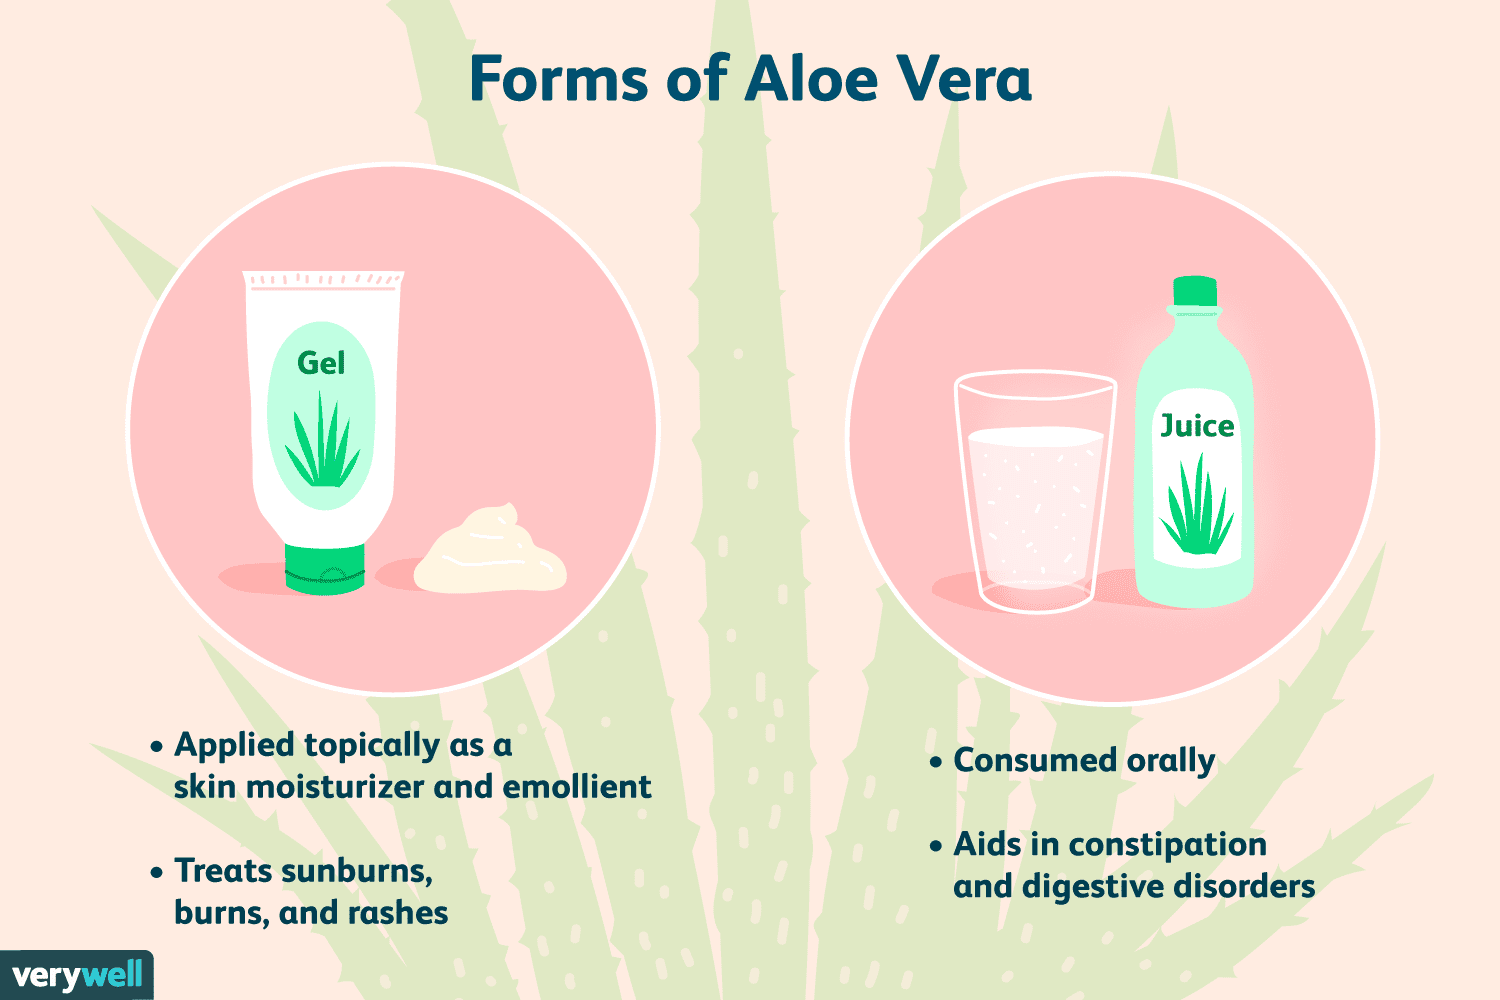 aloe vera: benefits, side effects, dosage, and interactions